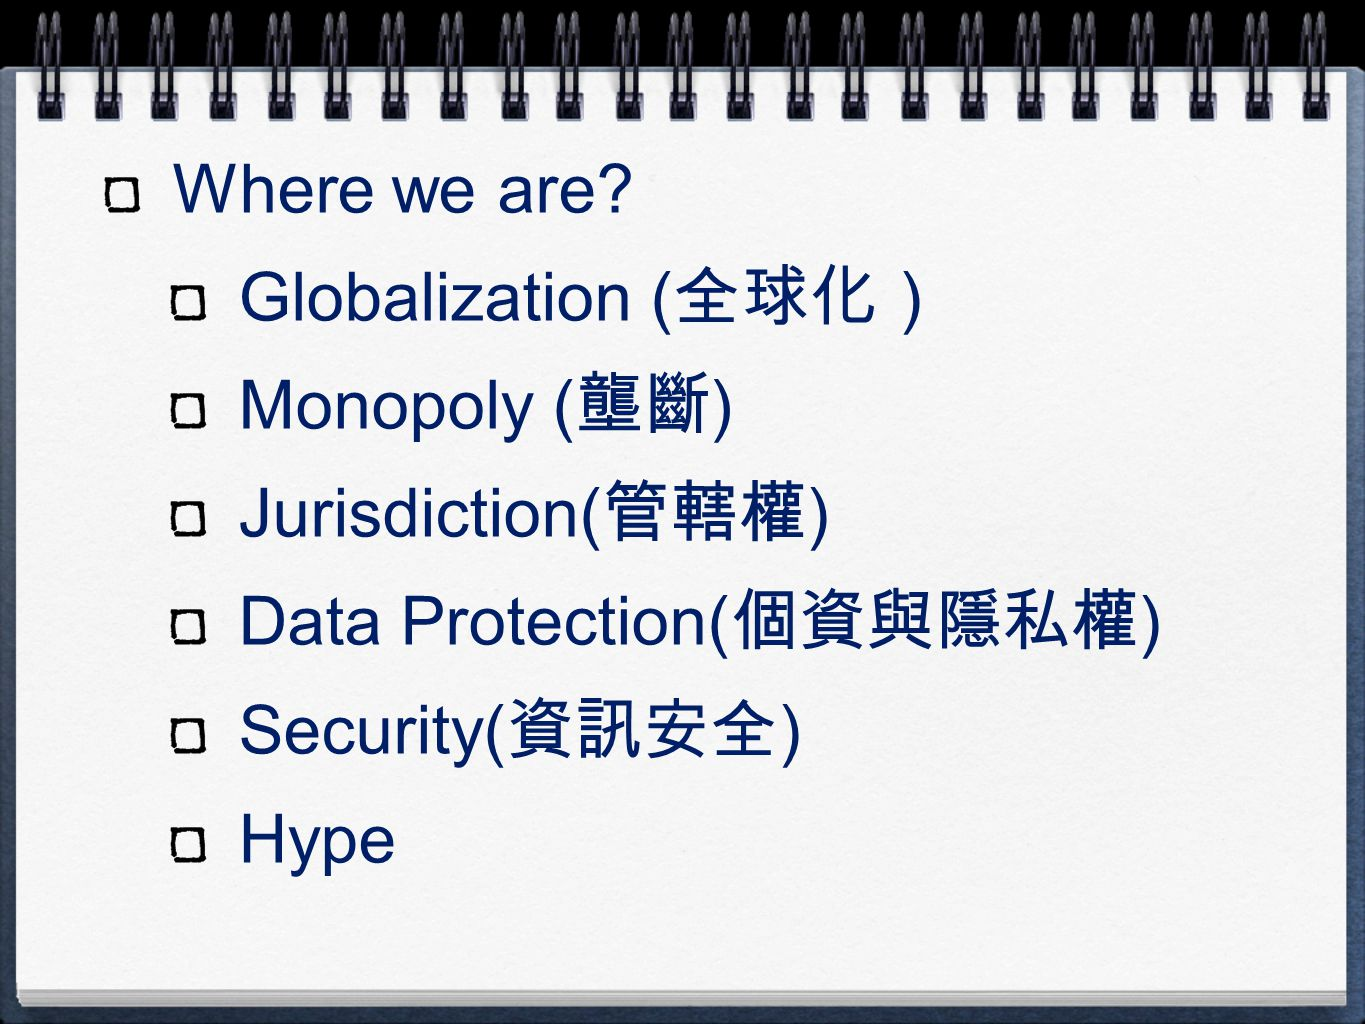 Where we are? Globalization ( 全球化) Monopoly ( 壟斷 ) Jurisdiction( 管轄權 ) Data Protection( 個資與隱私權 ) Security( 資訊安全 ) Hype